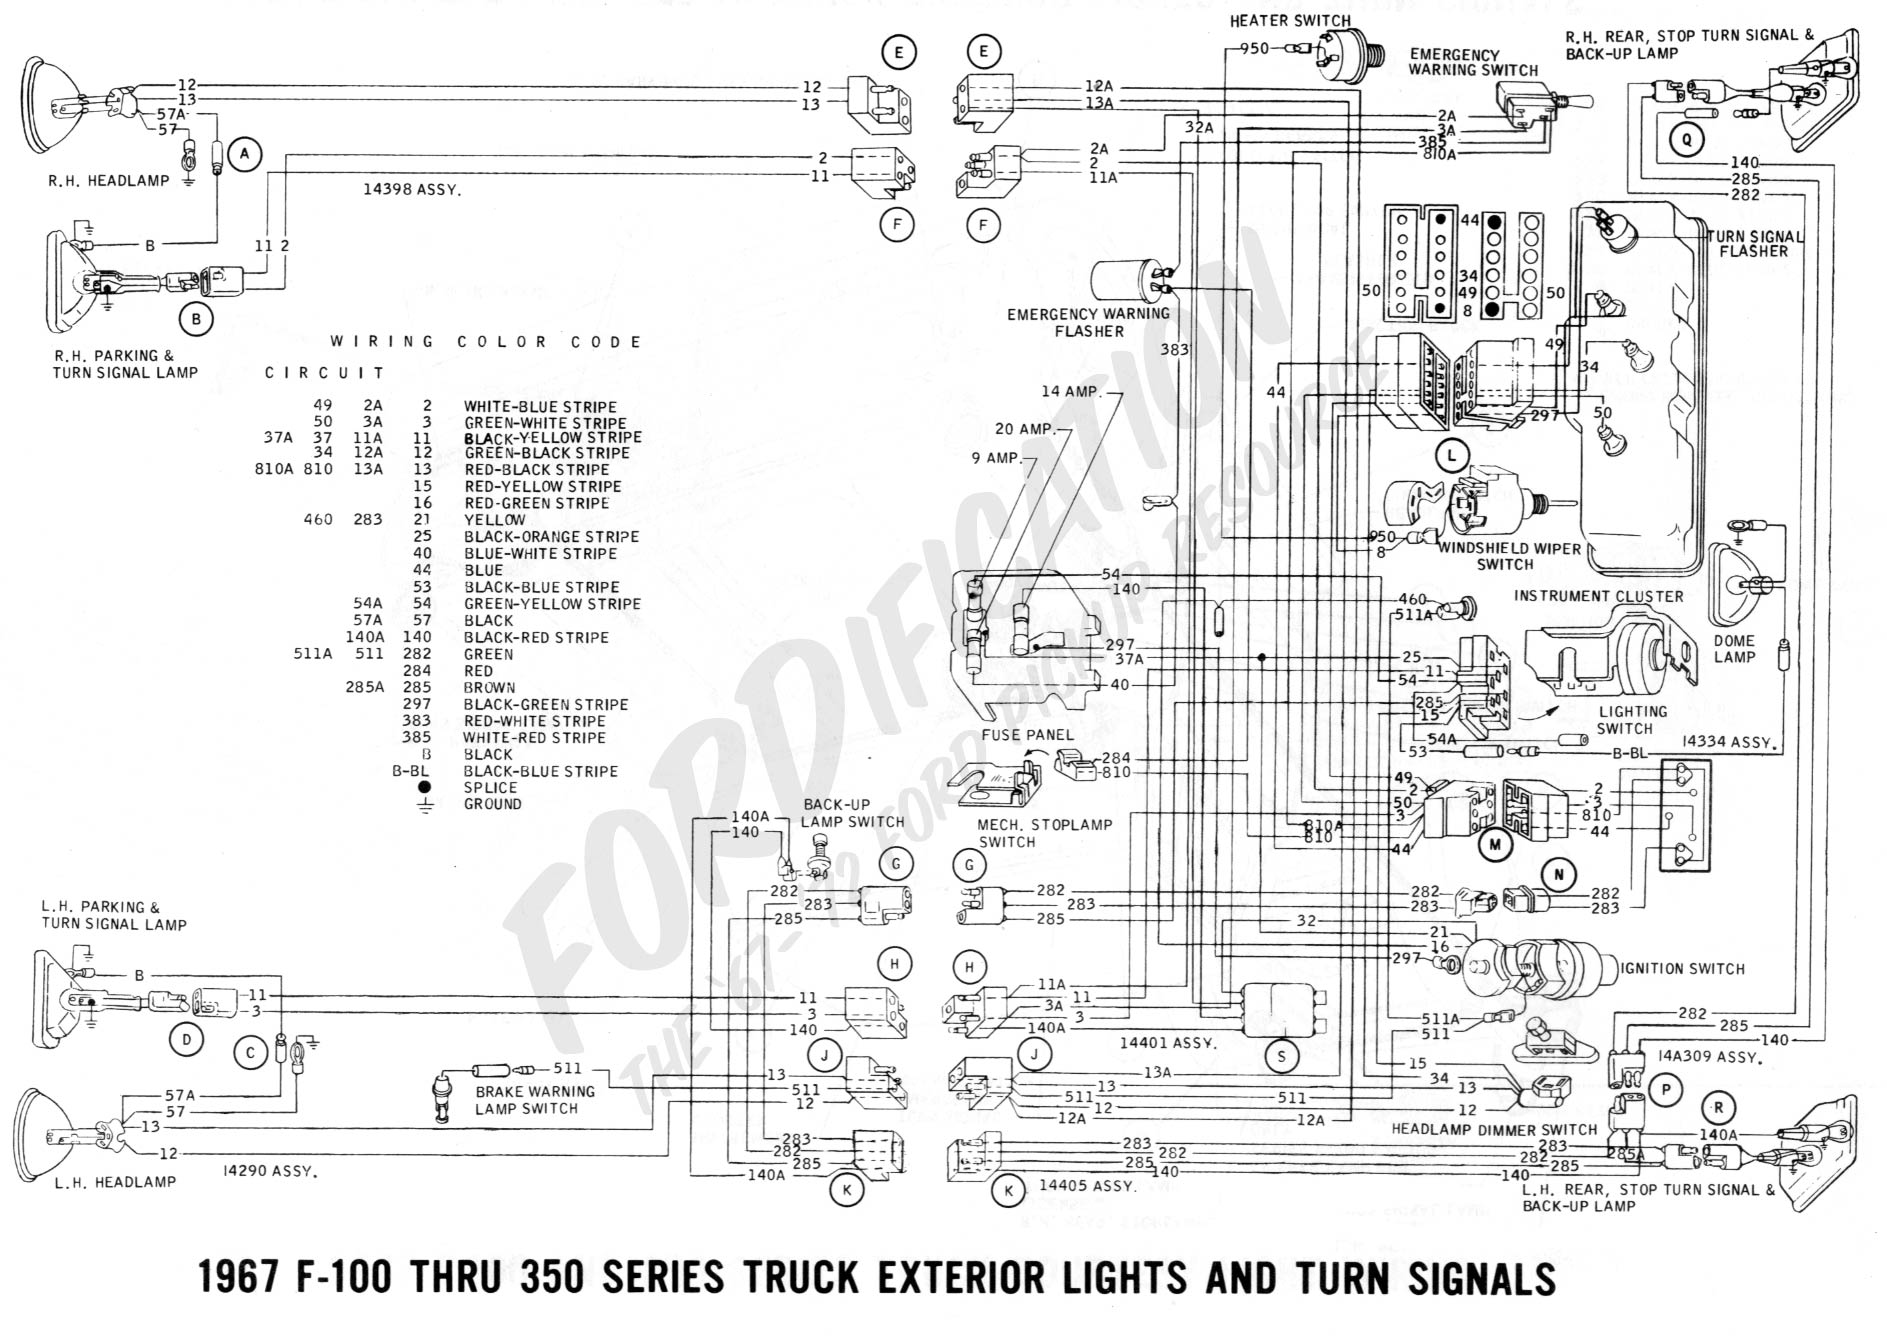 ford truck technical drawings and schematics section h wiring rh fordification com wiring diagram ford f 250 theft system 2009 wiring diagram ford f250 stereo